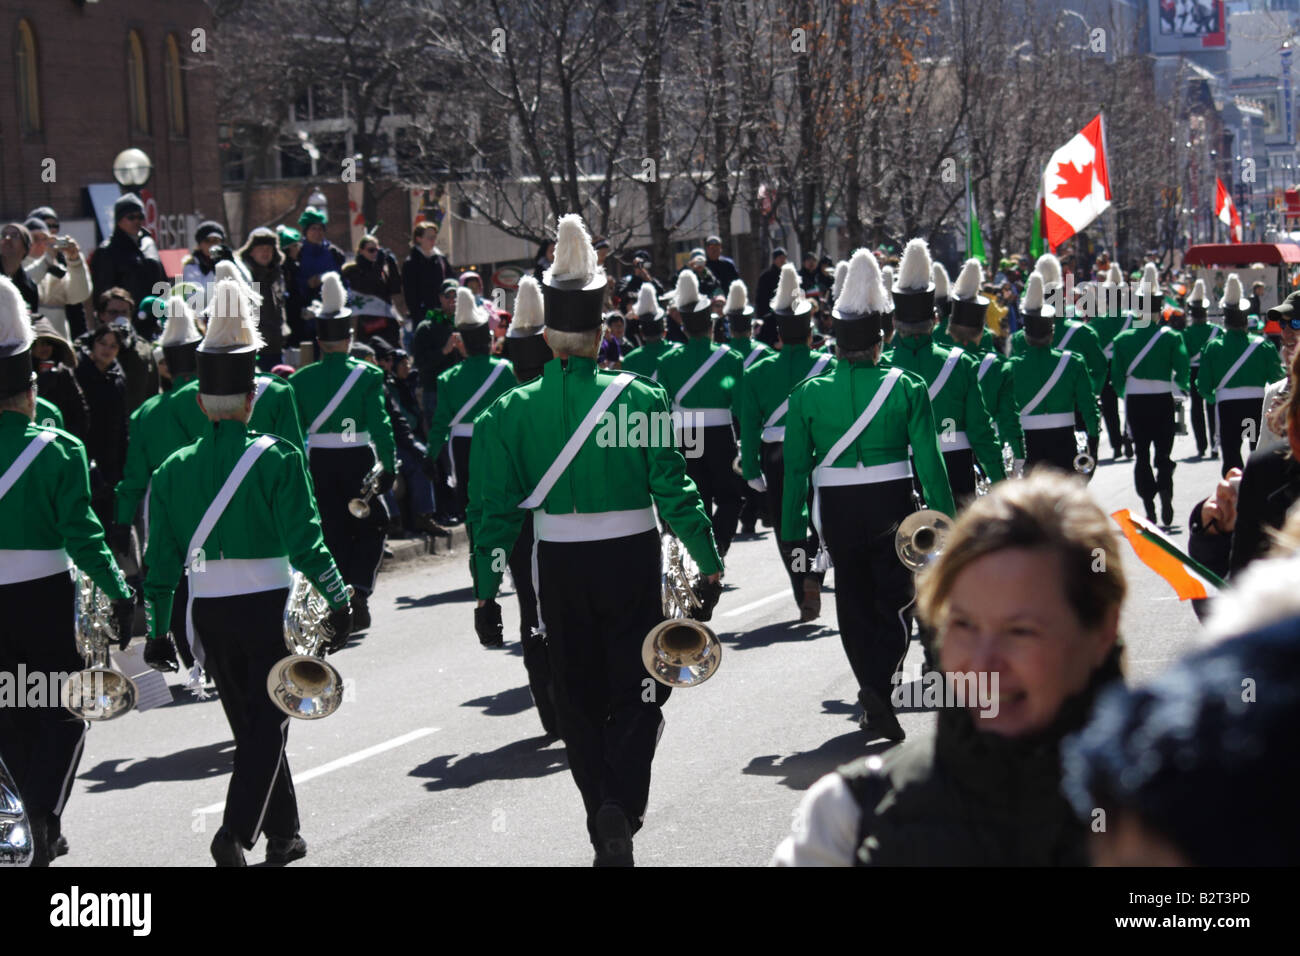 St Patrick's Day Parade on Yonge Street in Toronto, Ontario, Canada on March 16, 2008 - Stock Image